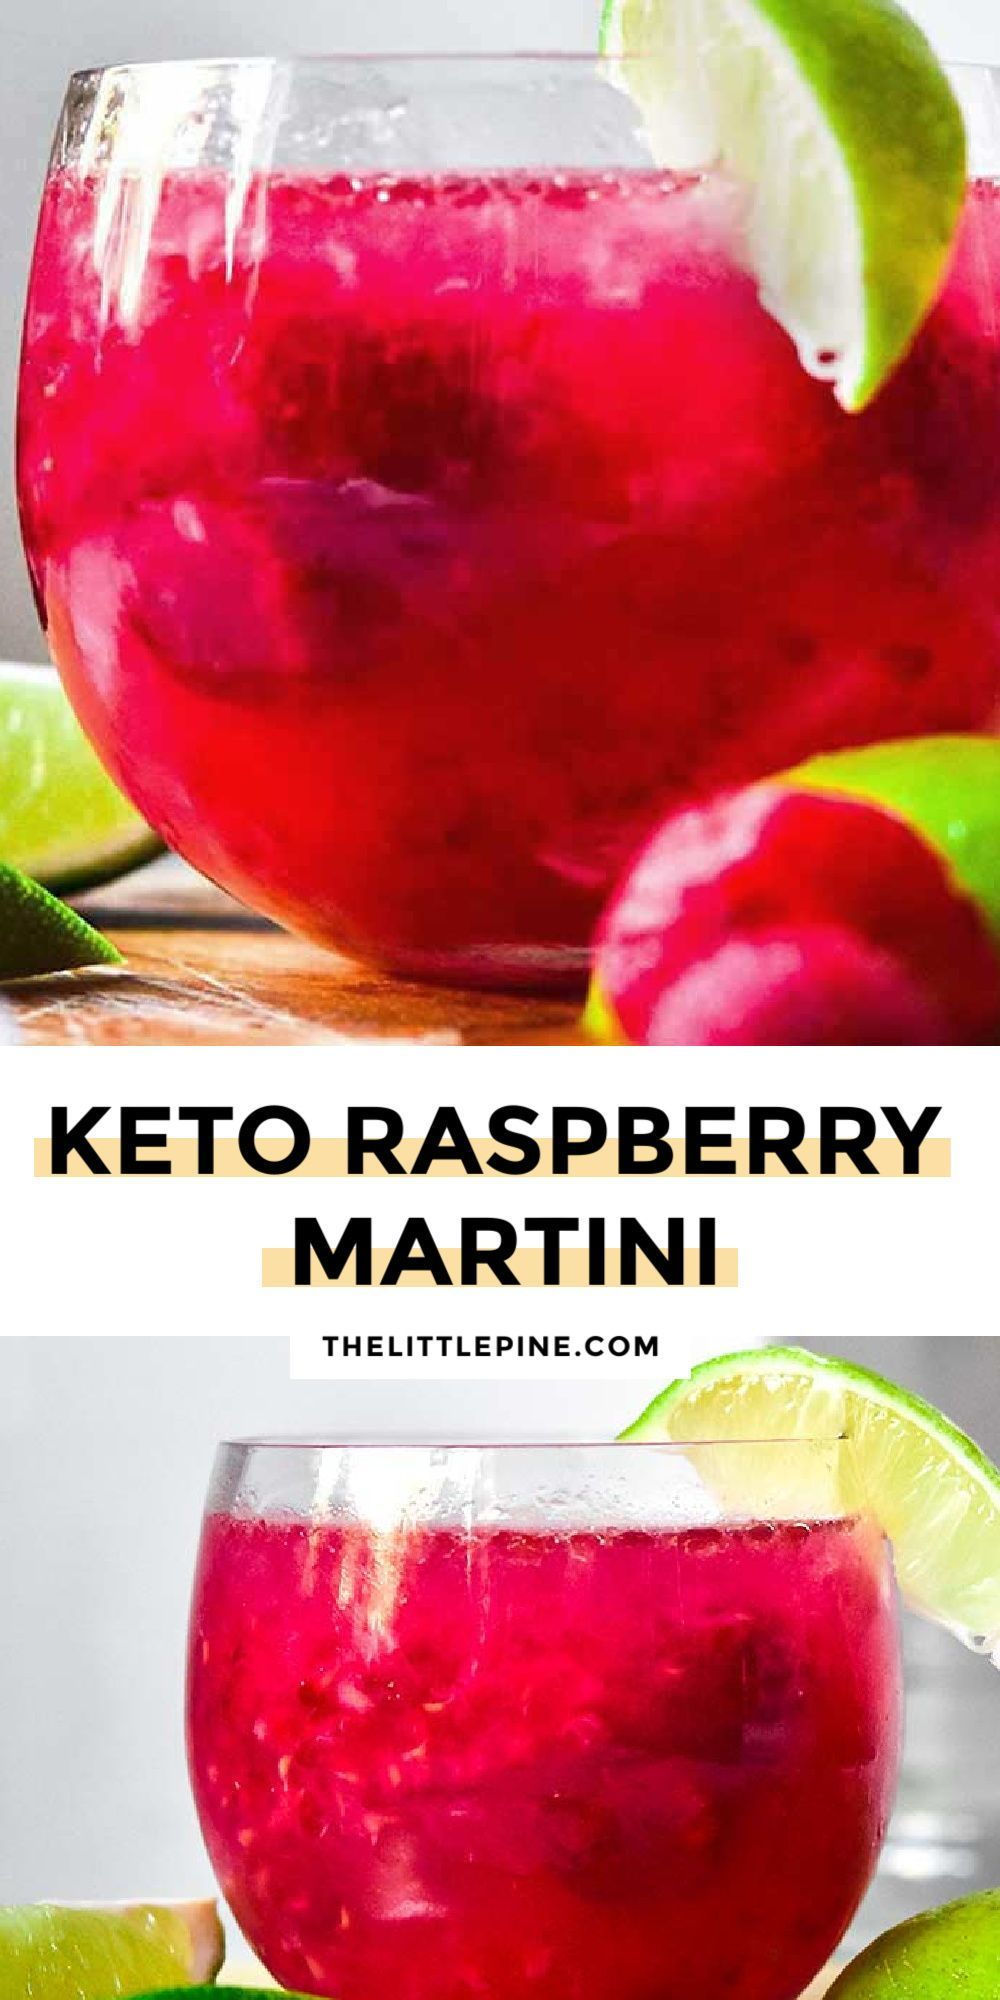 Low Carb Cosmopolitan 4g Net Carbs Cocktail Recipe In 2020 Low Carb Cocktails Delicious Snacks Recipes Low Carb Keto Recipes